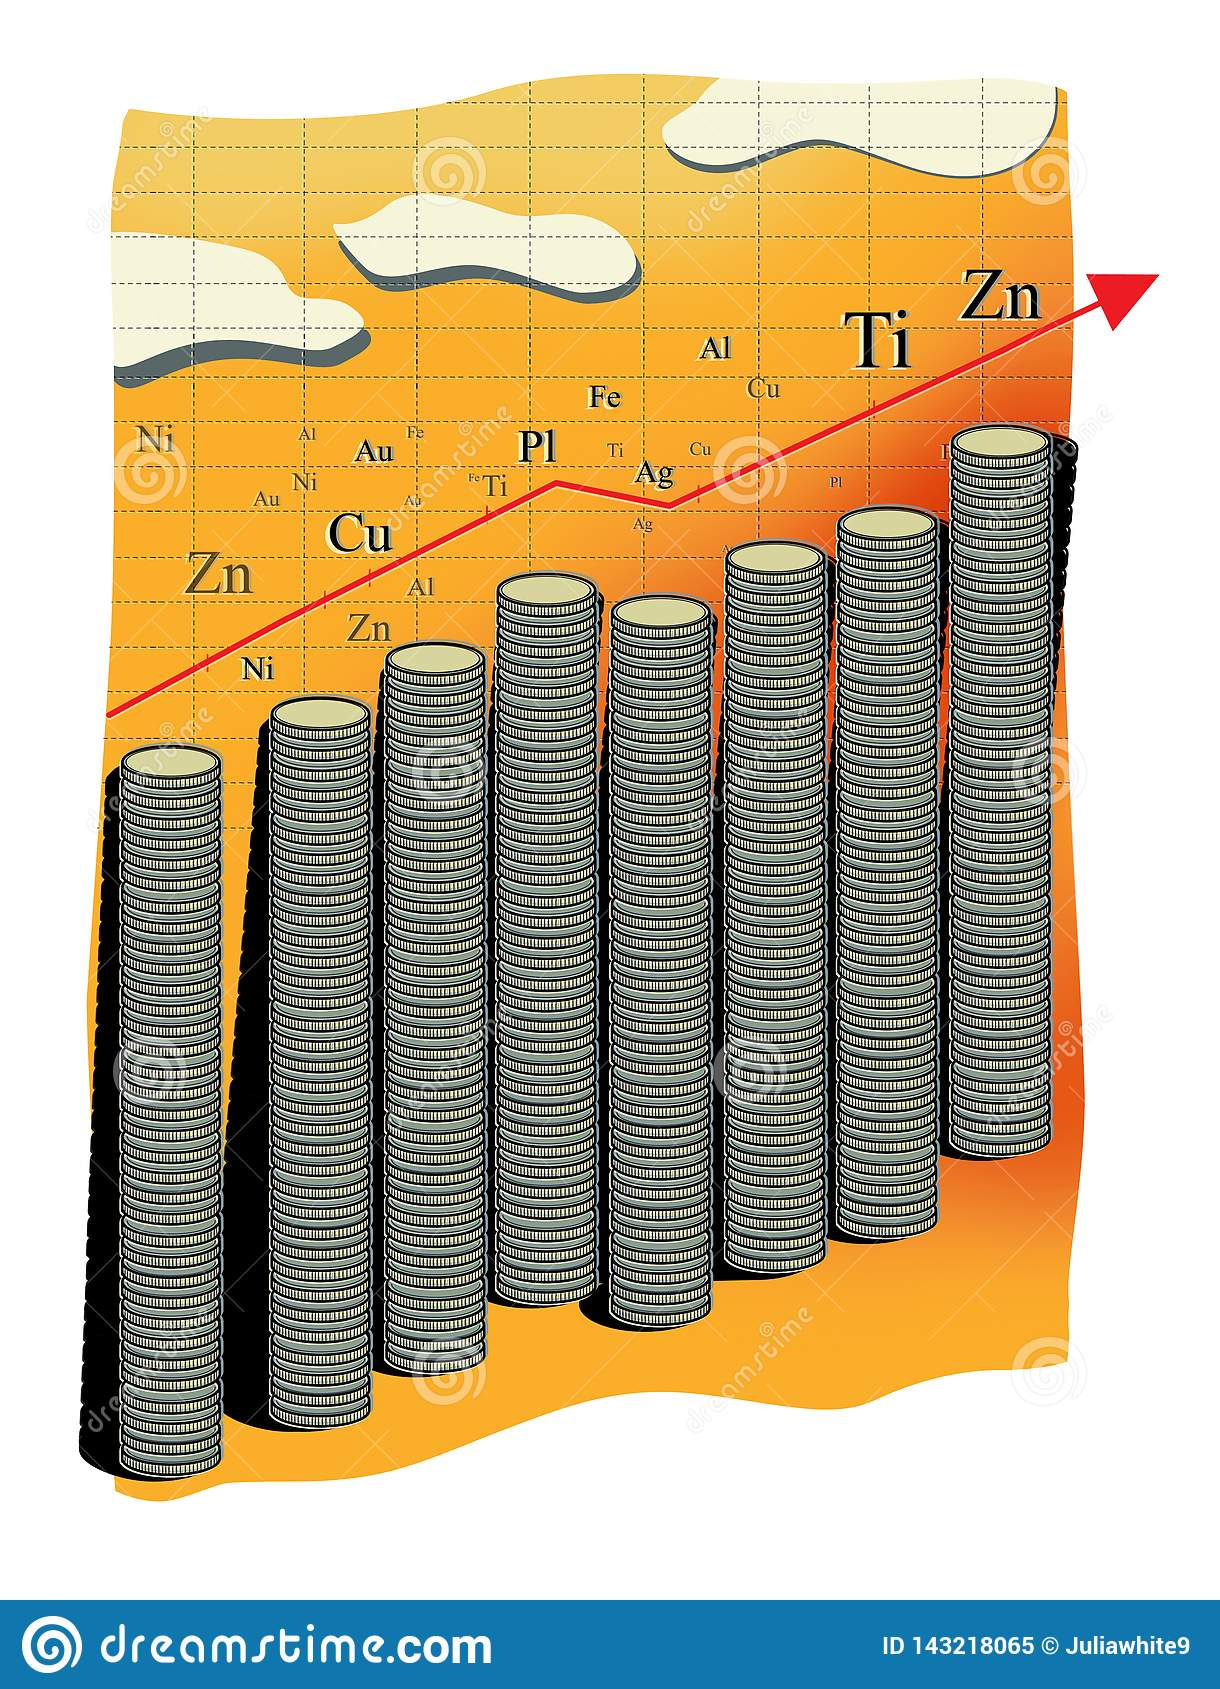 Commodity income. Abstract graph of the growth in the cost of metals. Multiple stacks of coins or chips in terms of growth